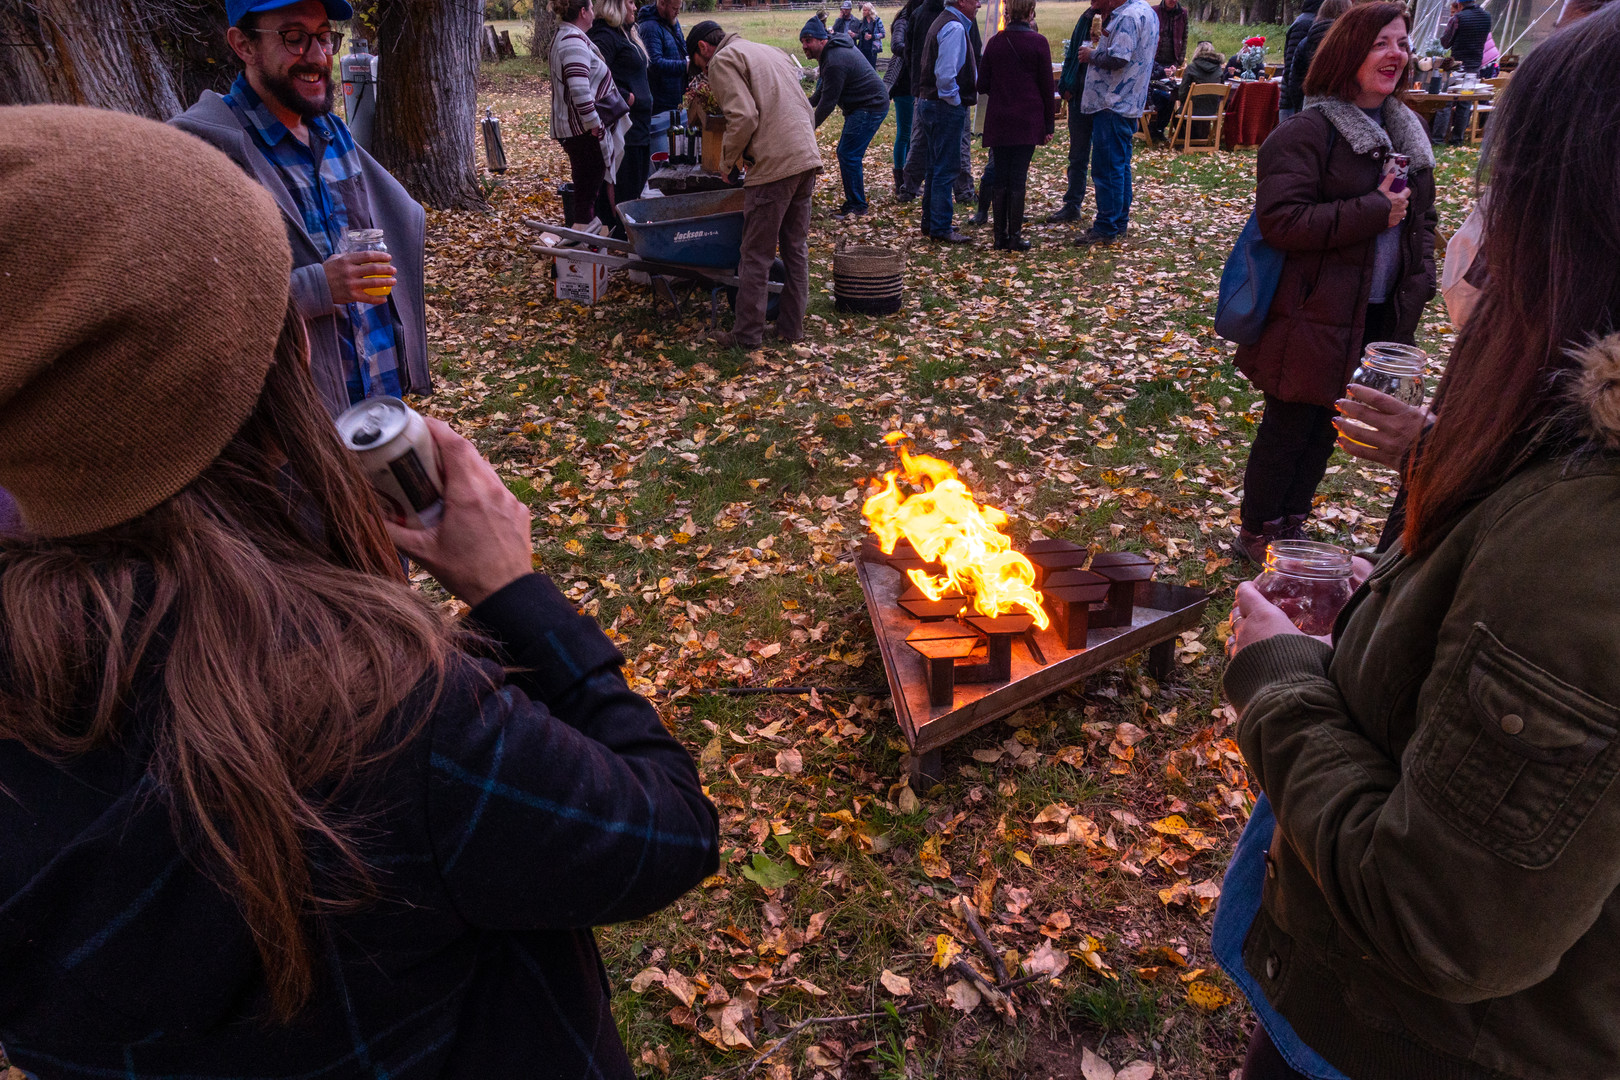 Hexapit at a party in fall